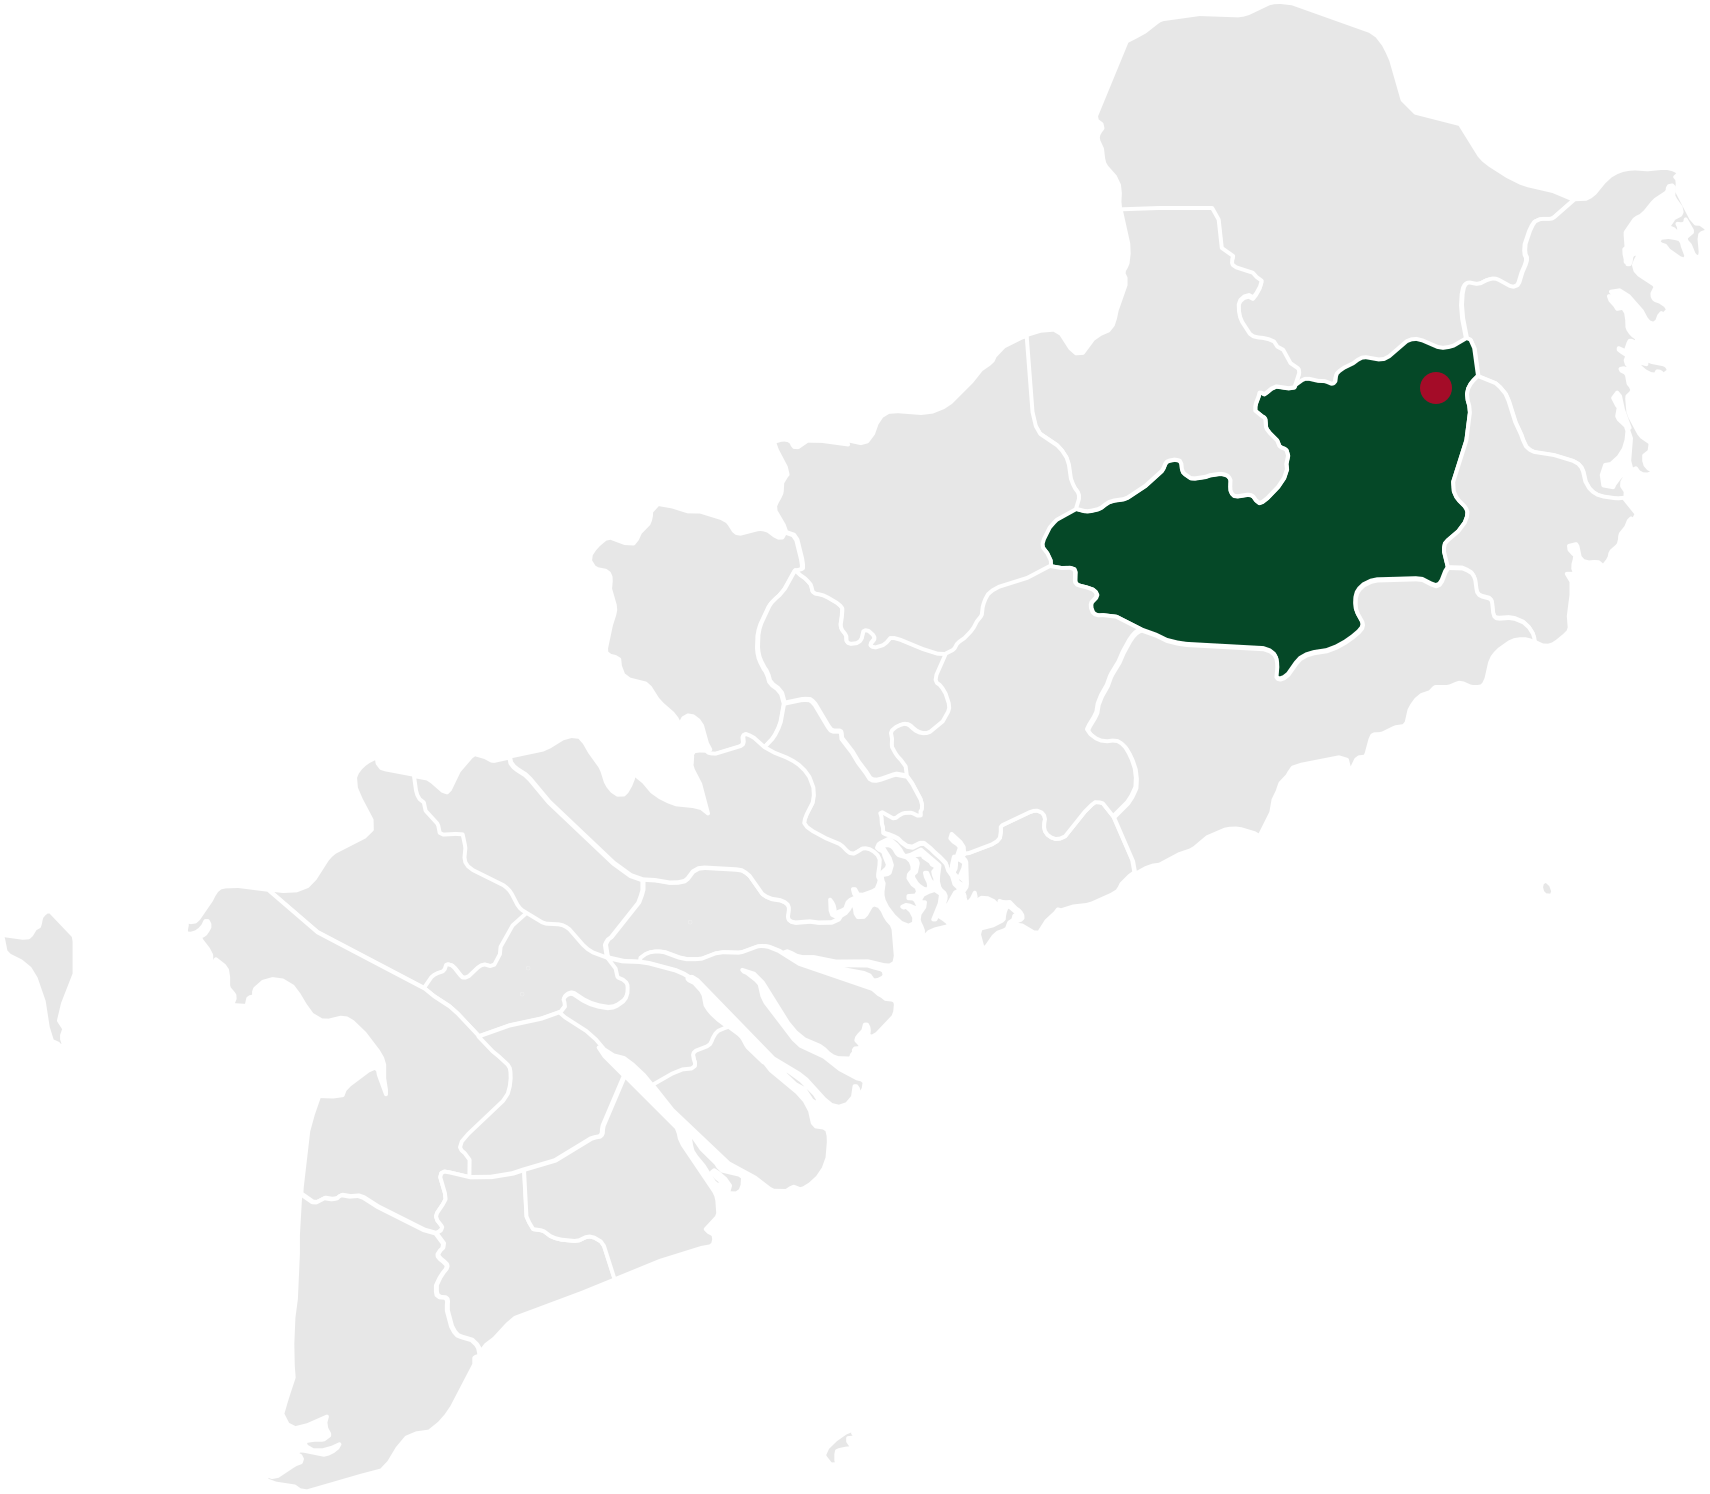 Dalat City information